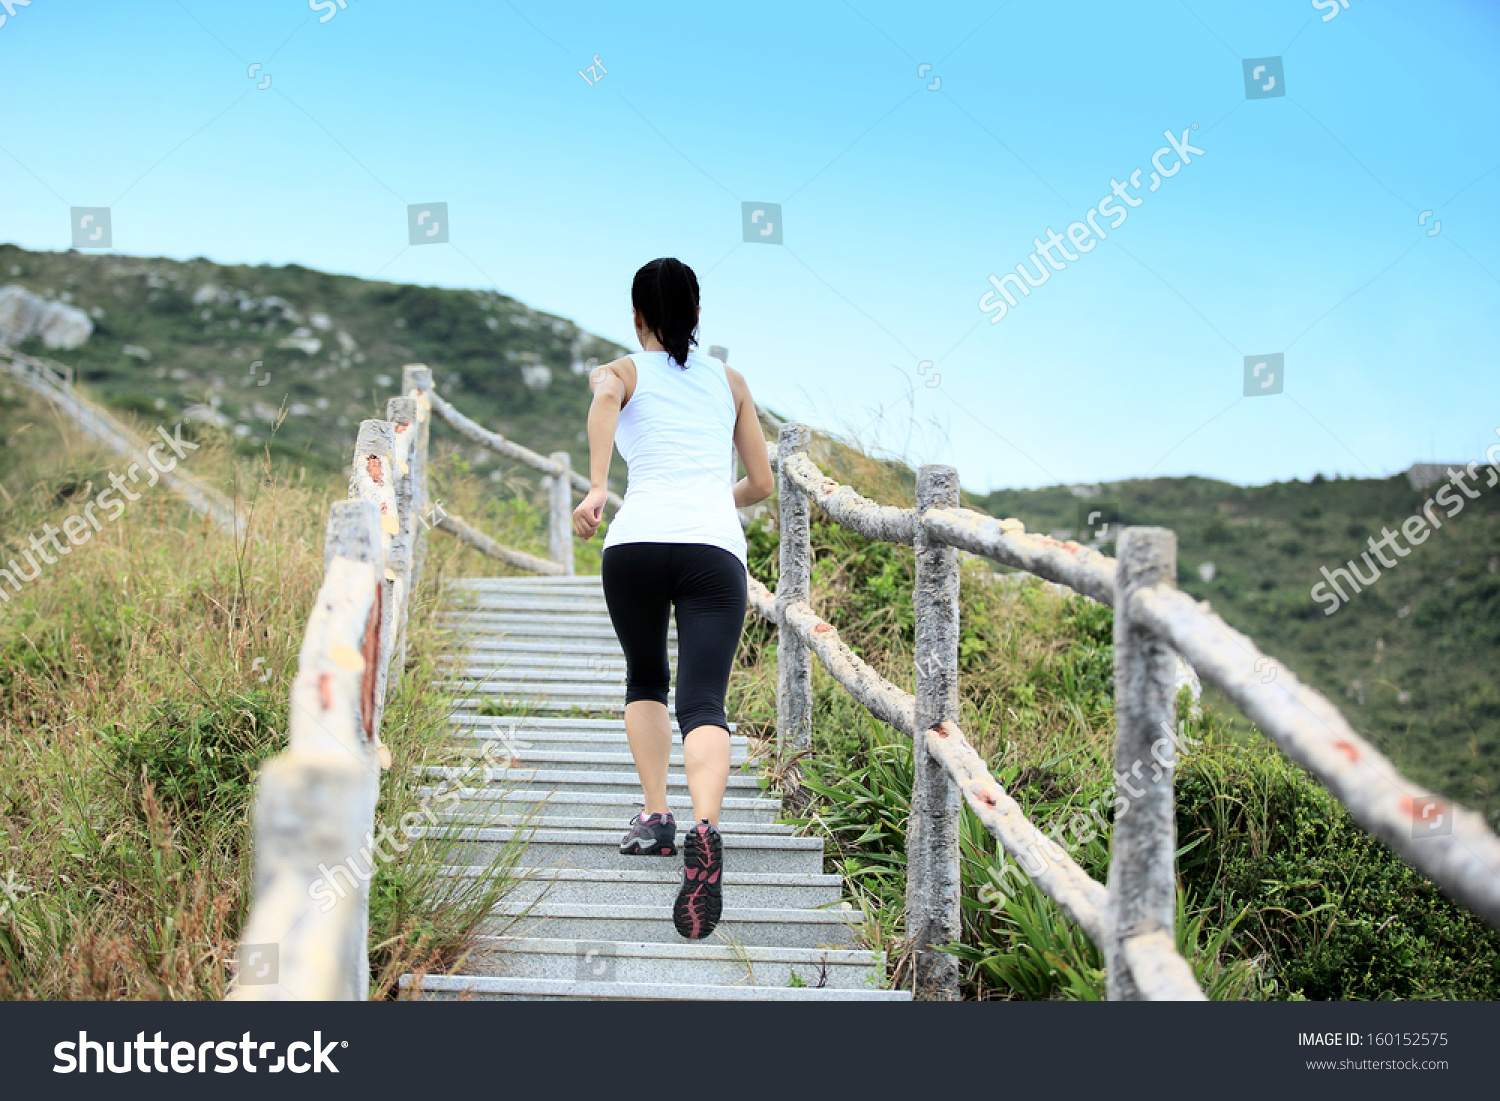 Trail Running Shoes For Stairs